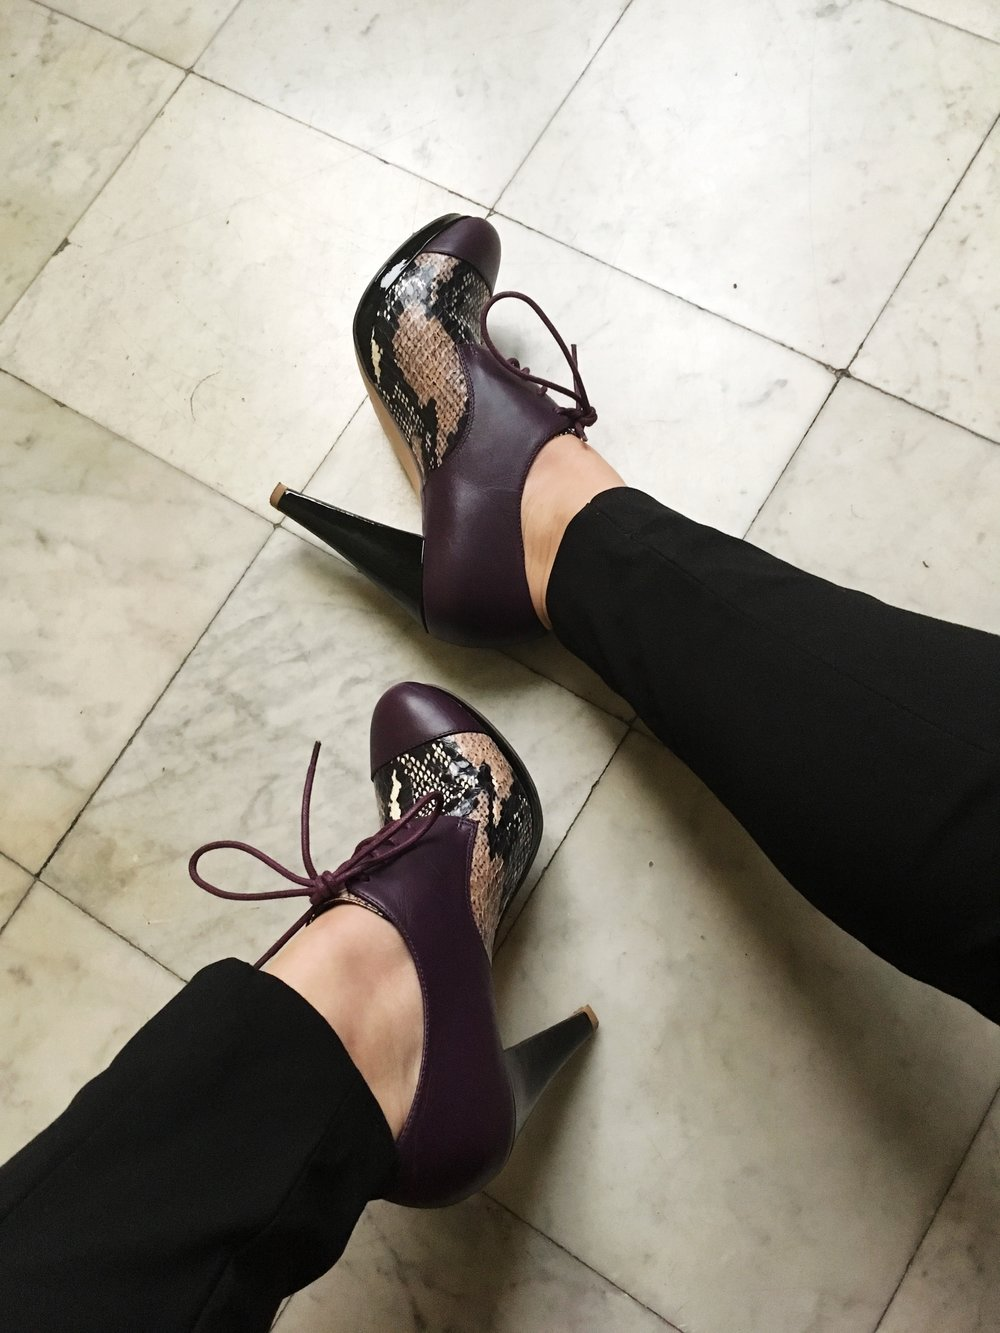 Kick Up Your Heels Cady Quotidienne Shoe Shot.jpg